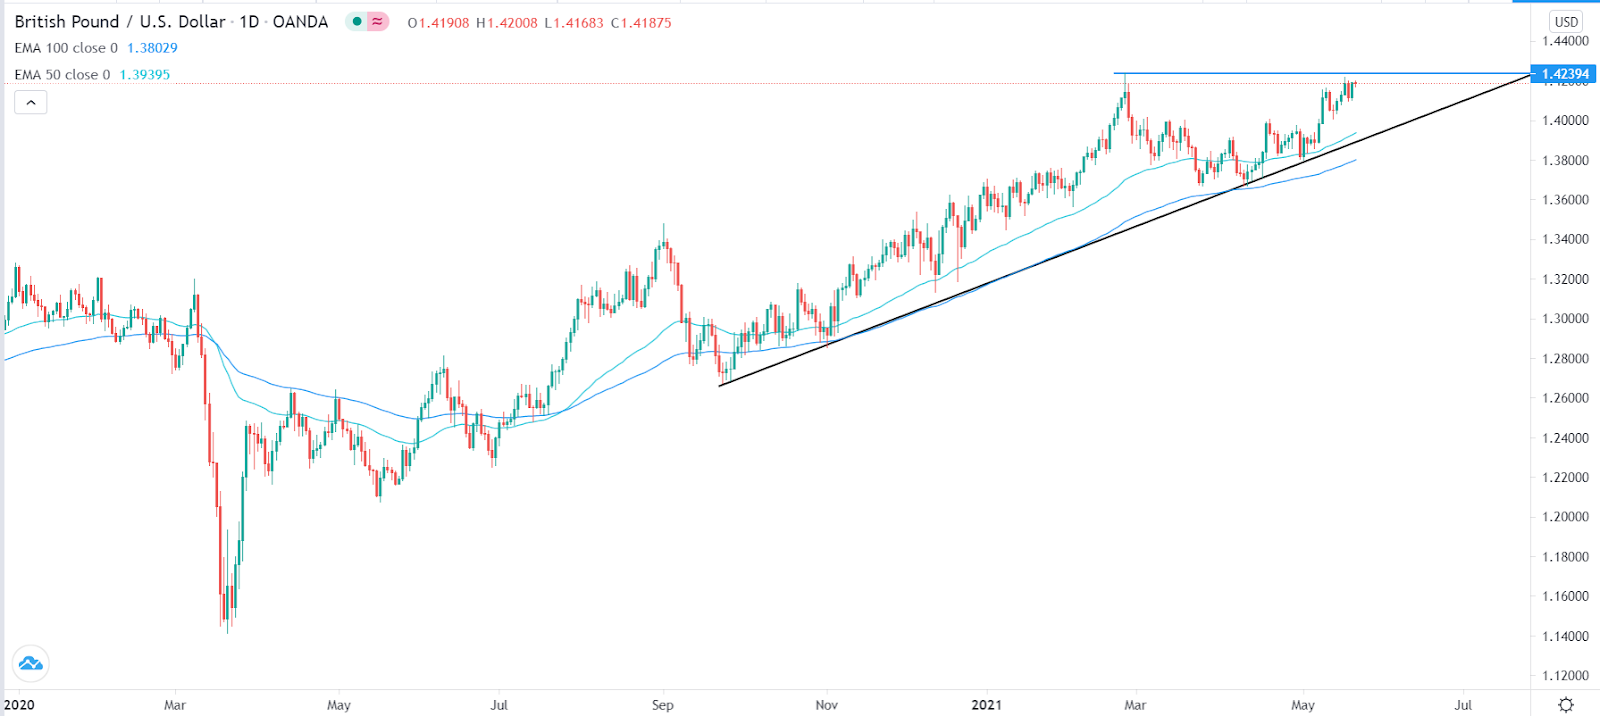 GBP/USD set for more gains after strong UK retail sales and PMI data